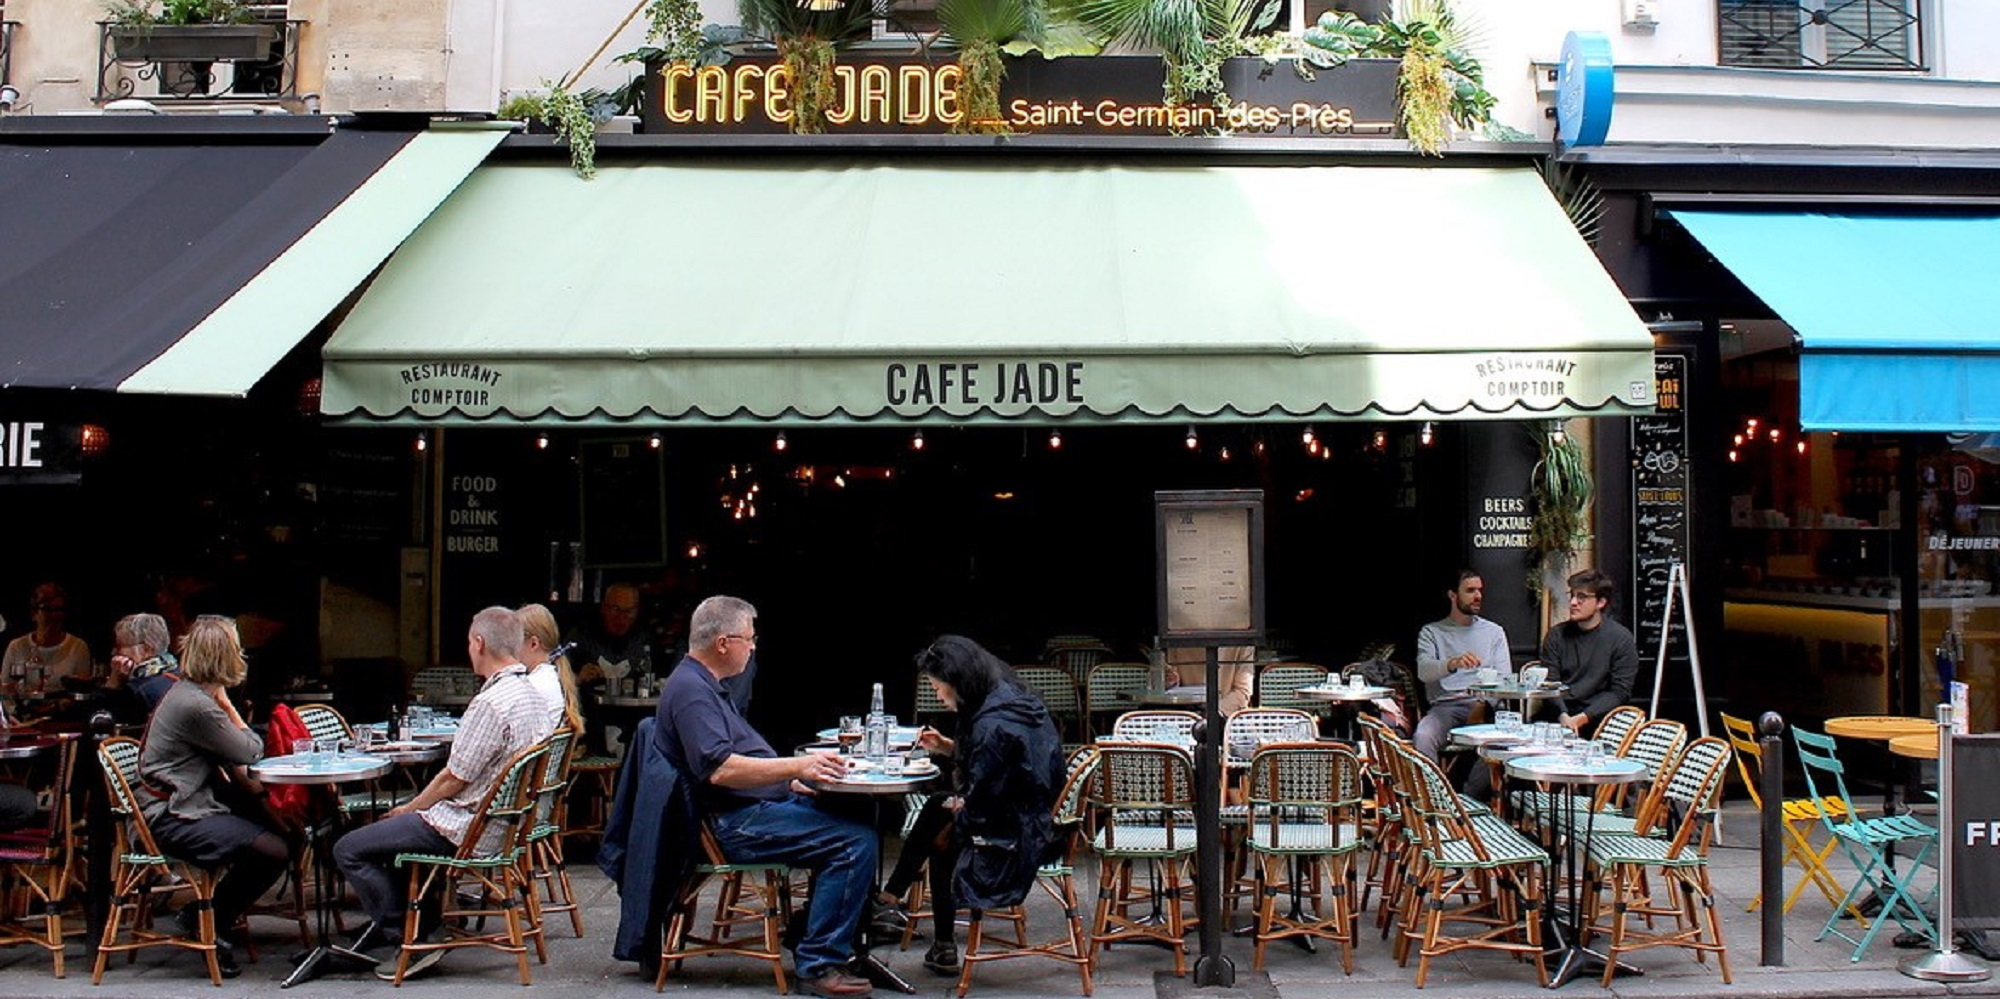 Brunch Café Jade (75006 Paris)